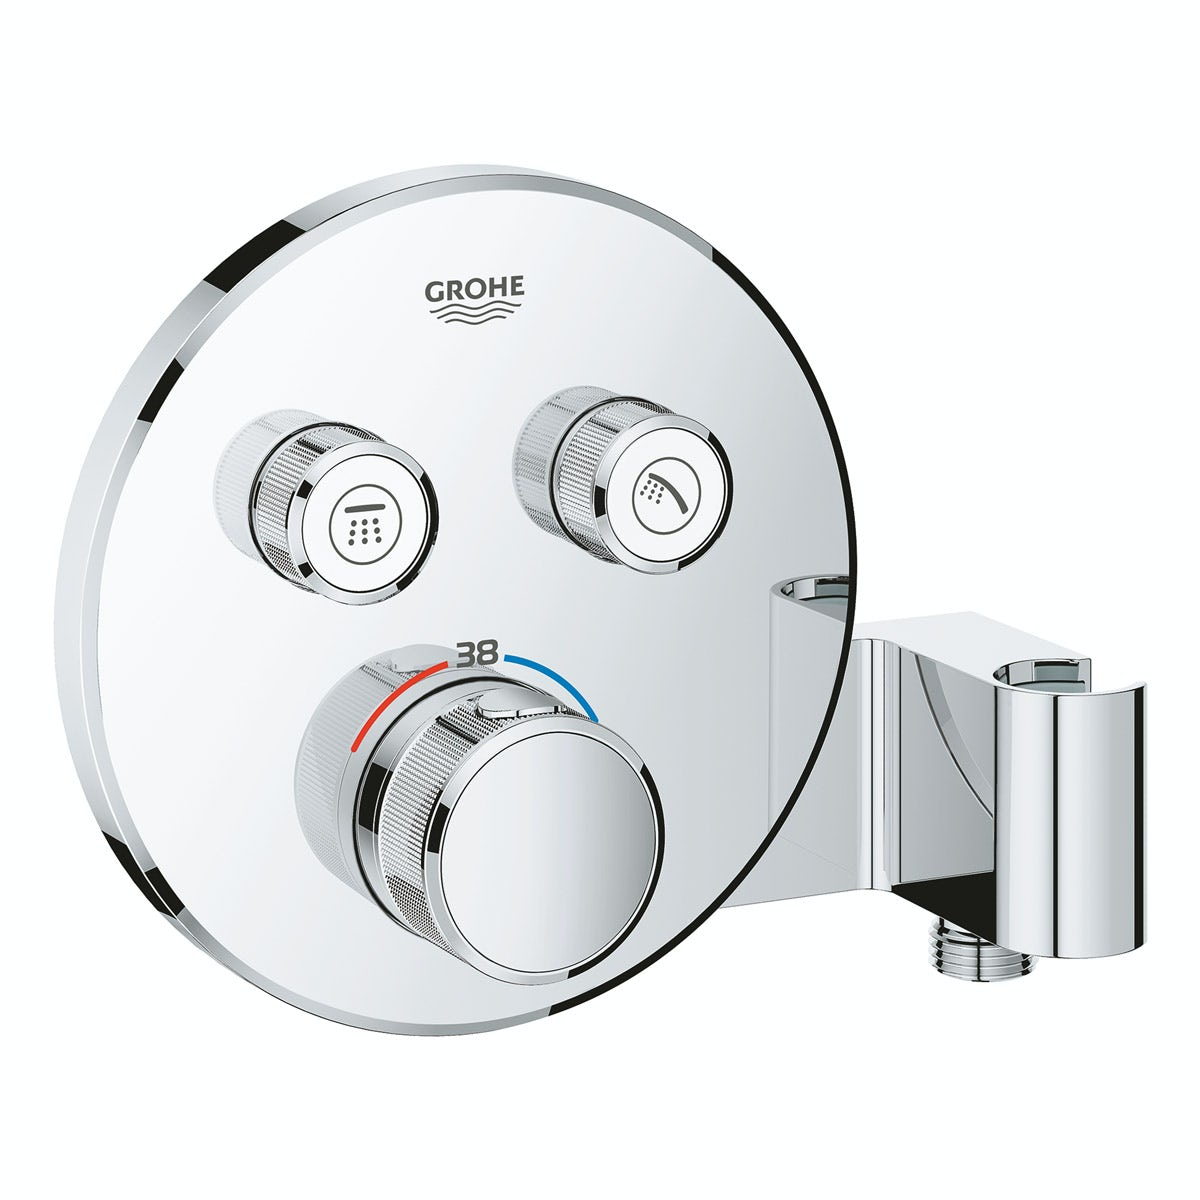 Grohe Grohtherm SmartControl round thermostatic concealed 2 way shower valve trimset with shower holder